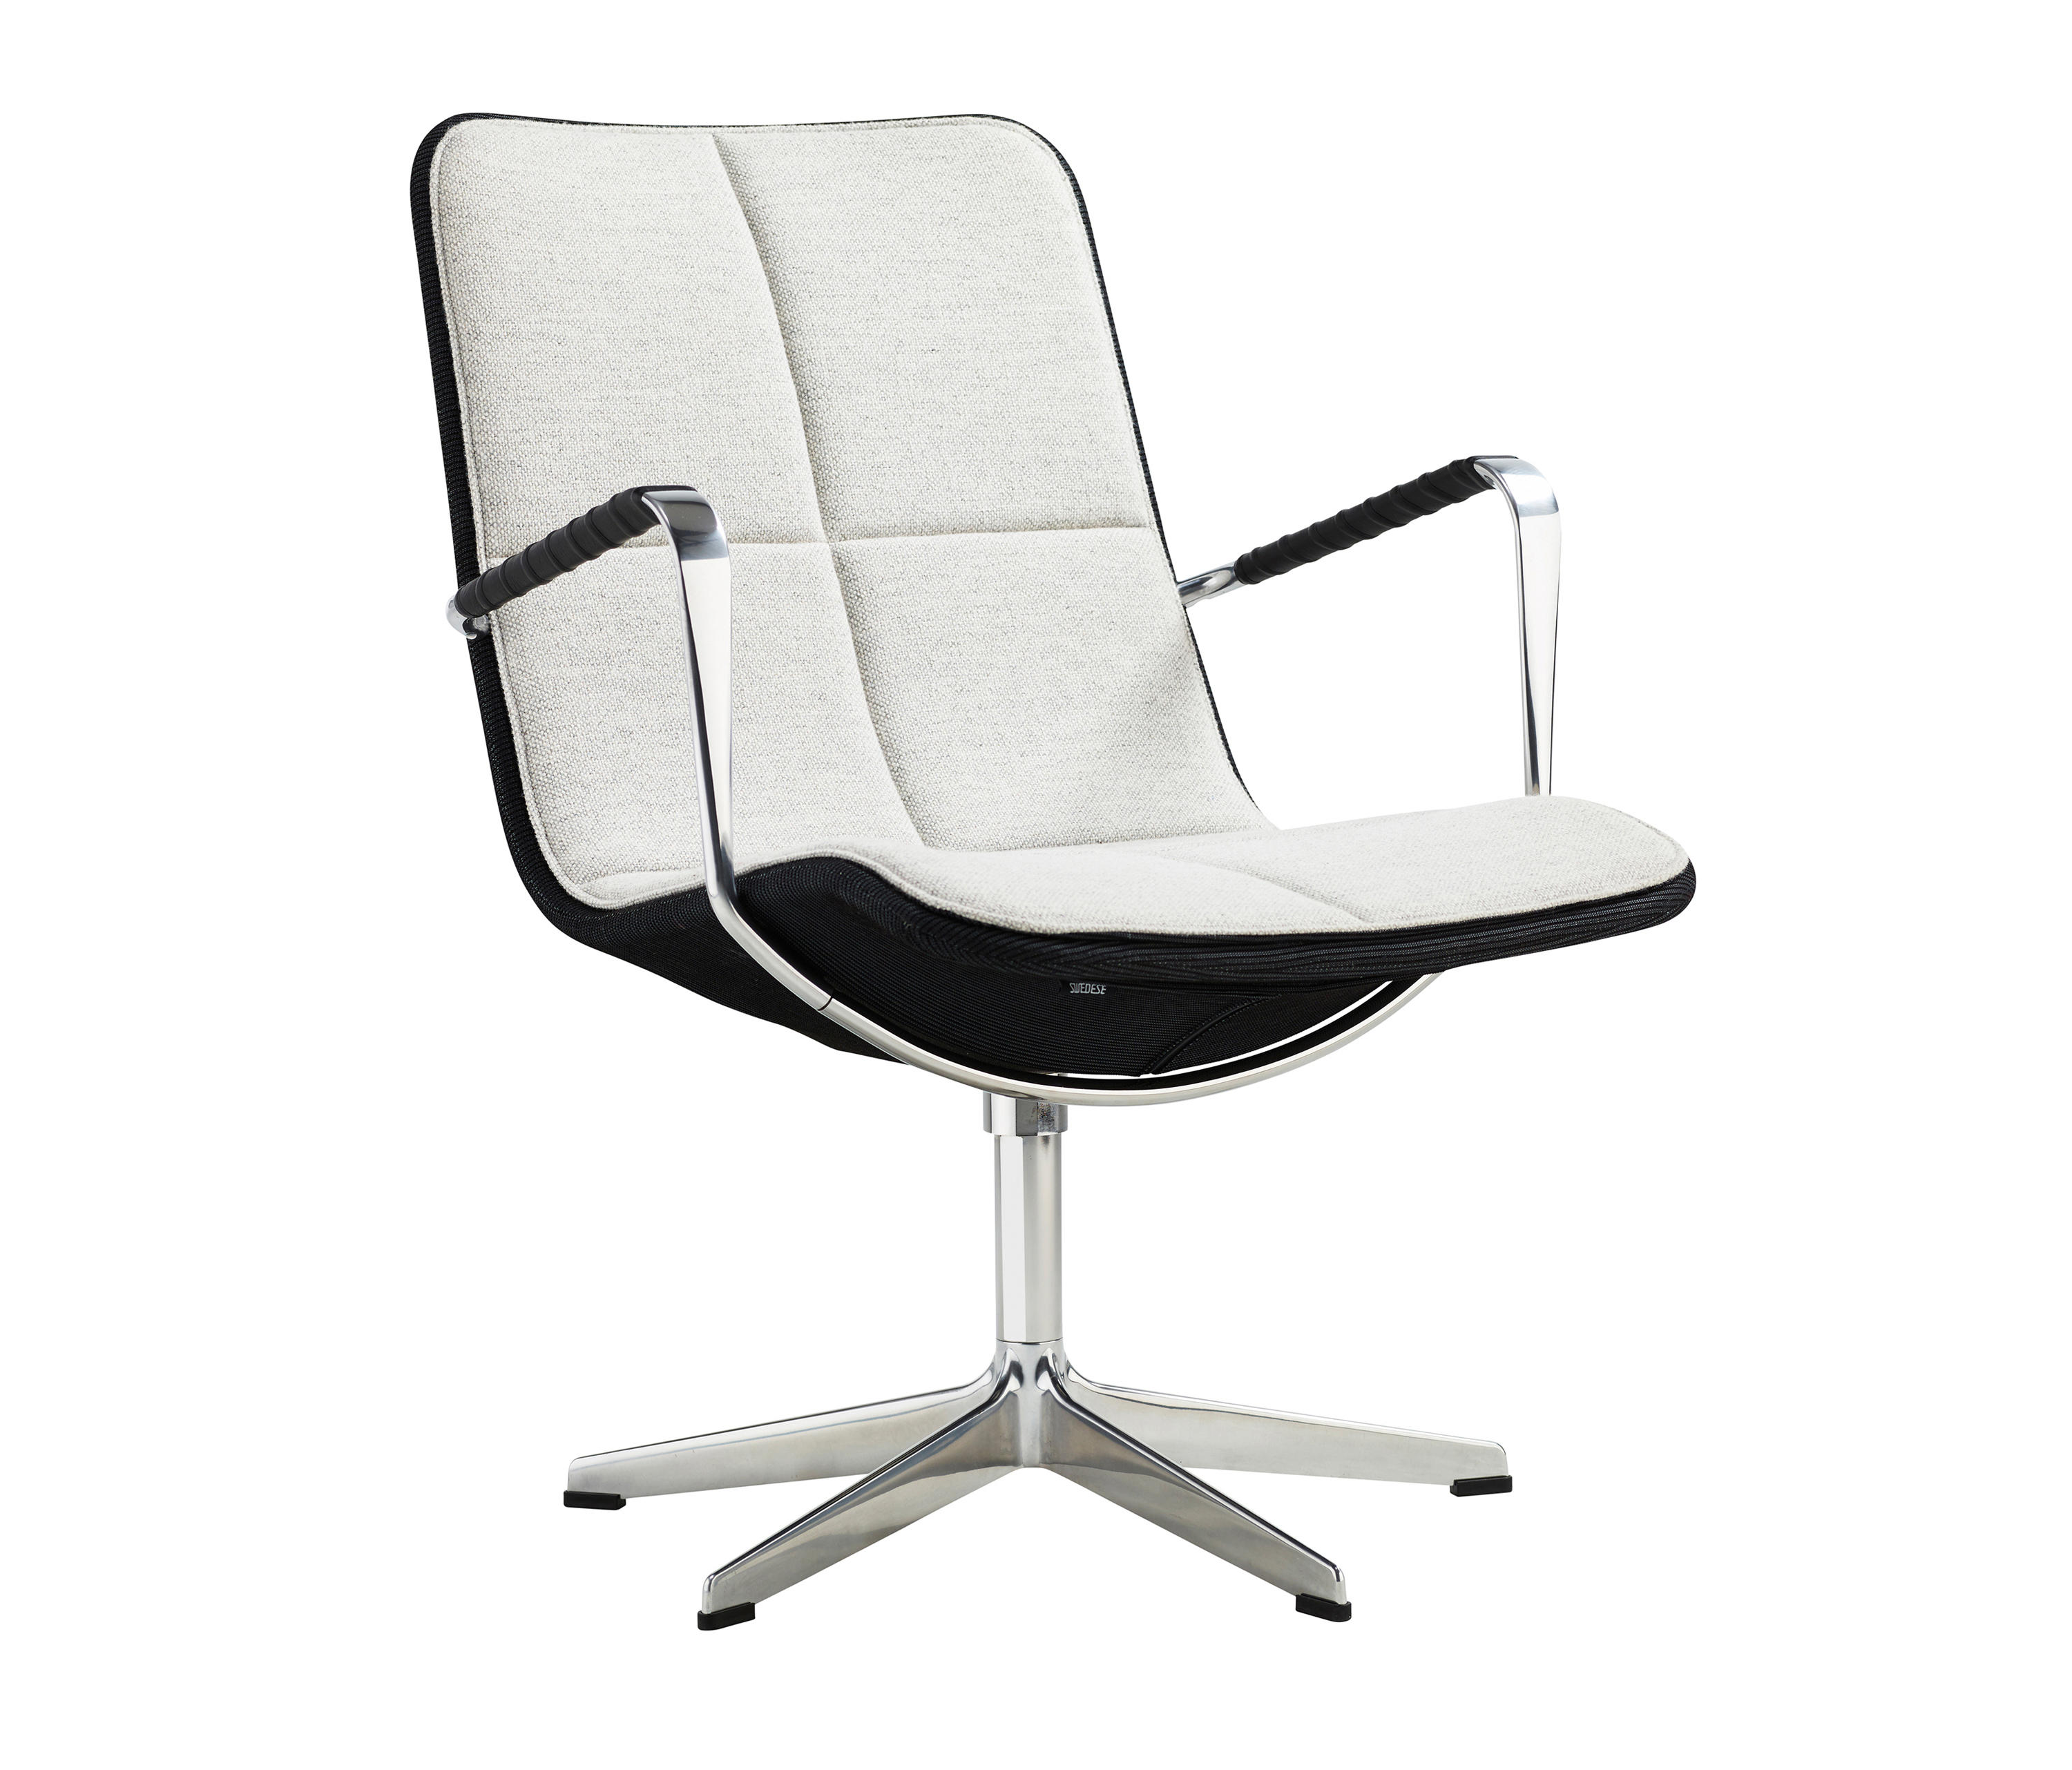 KITE LOW BACK Lounge chairs from Swedese Architonic